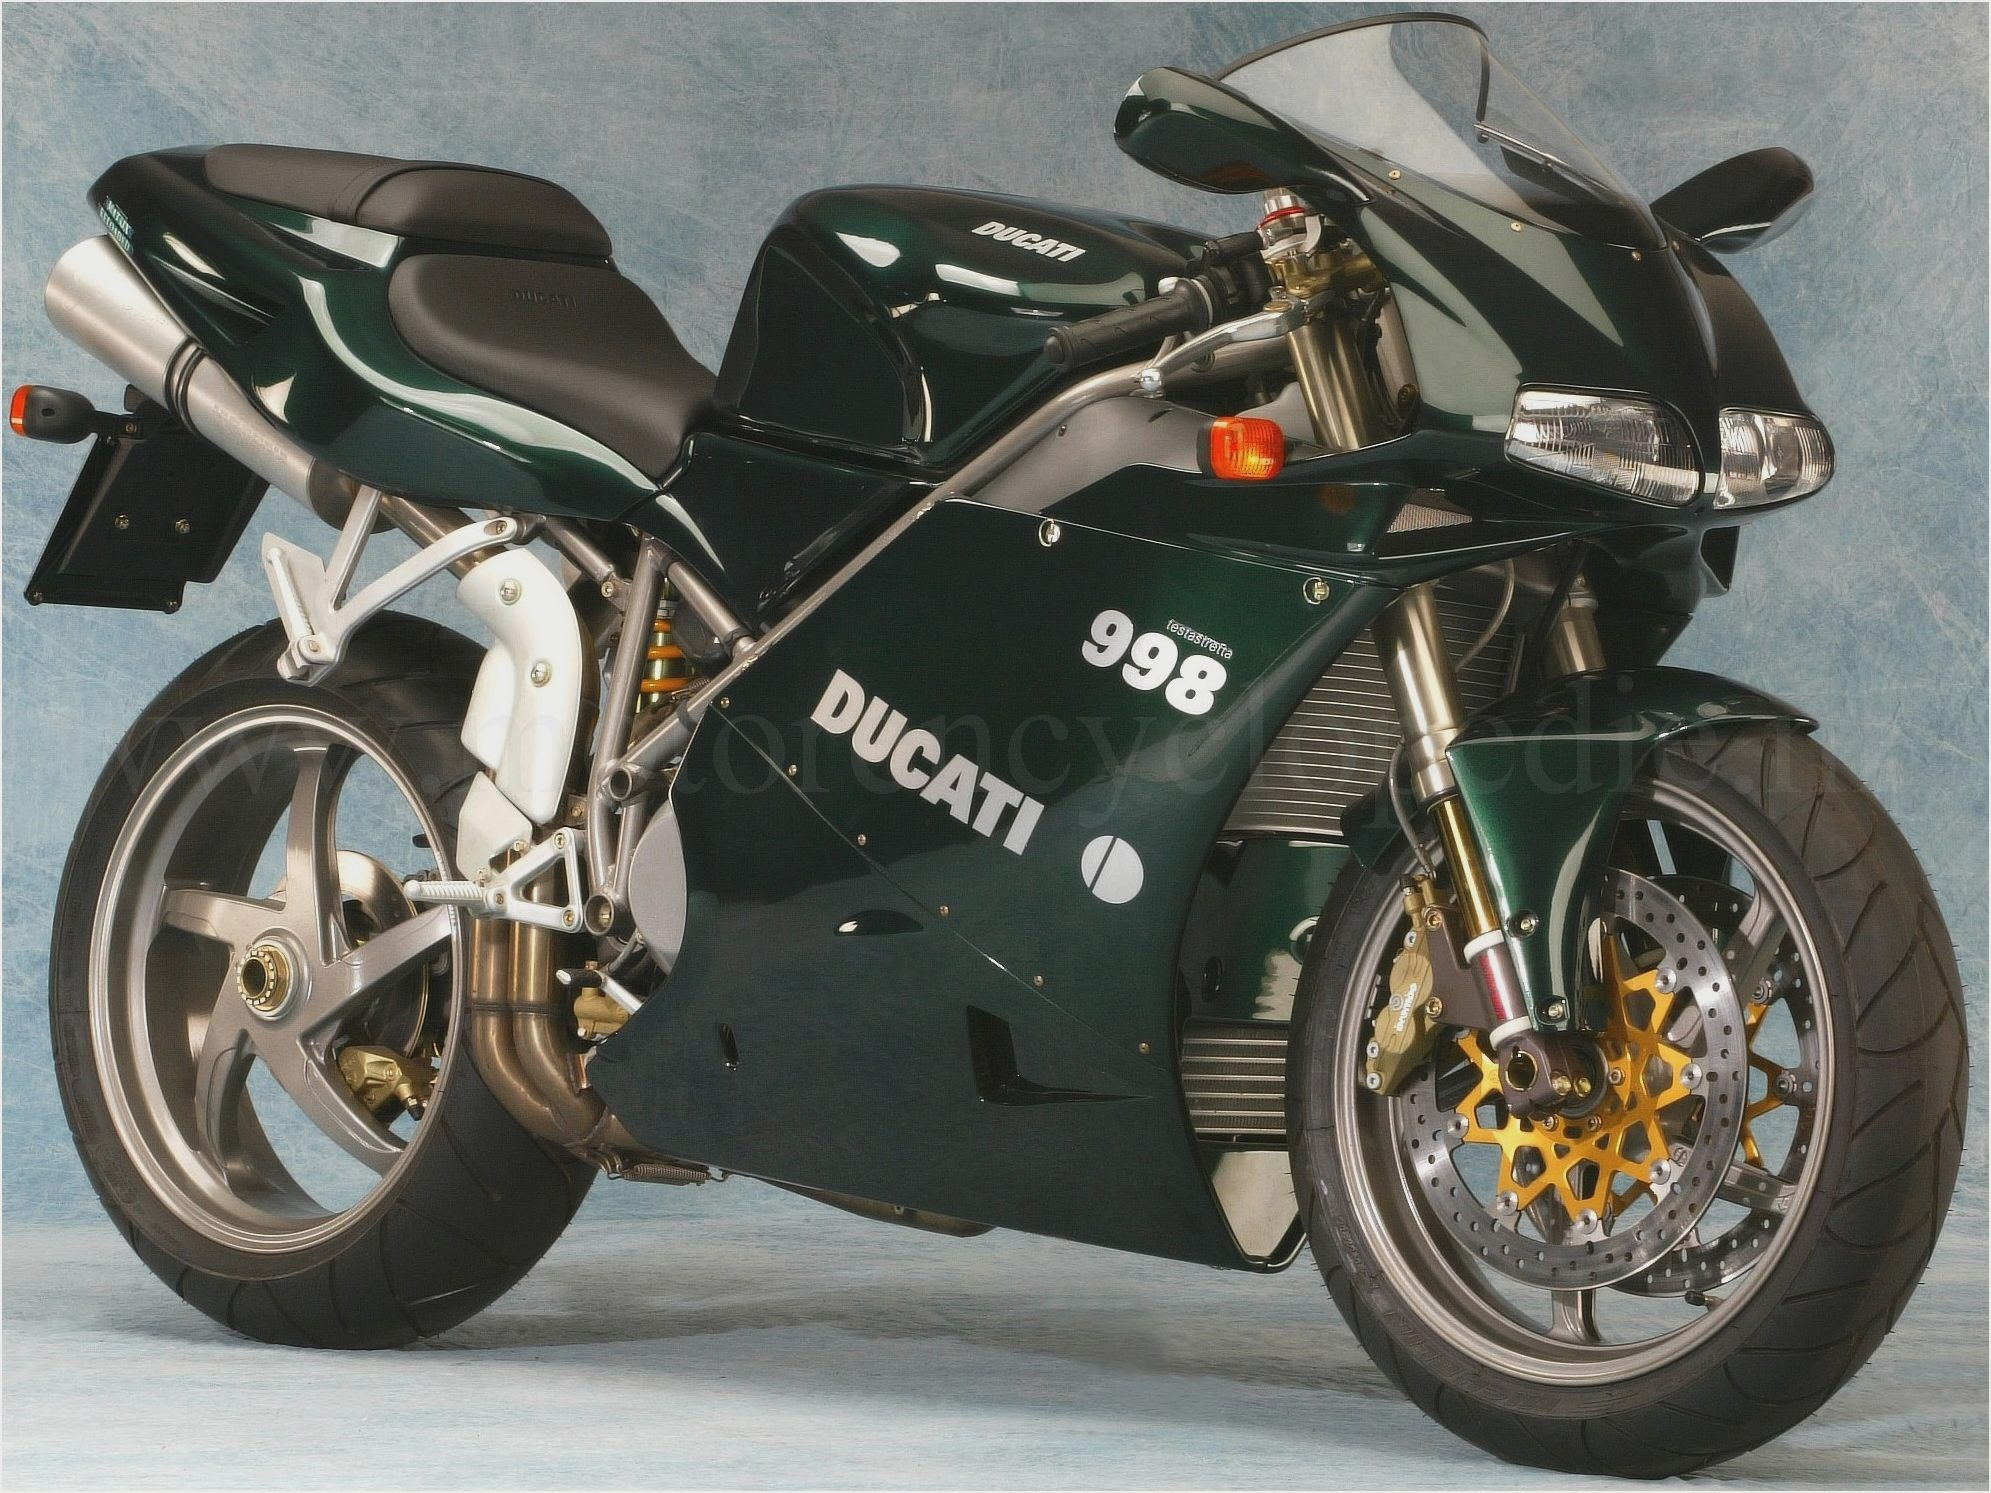 Ducati 998 Matrix wallpapers #11400